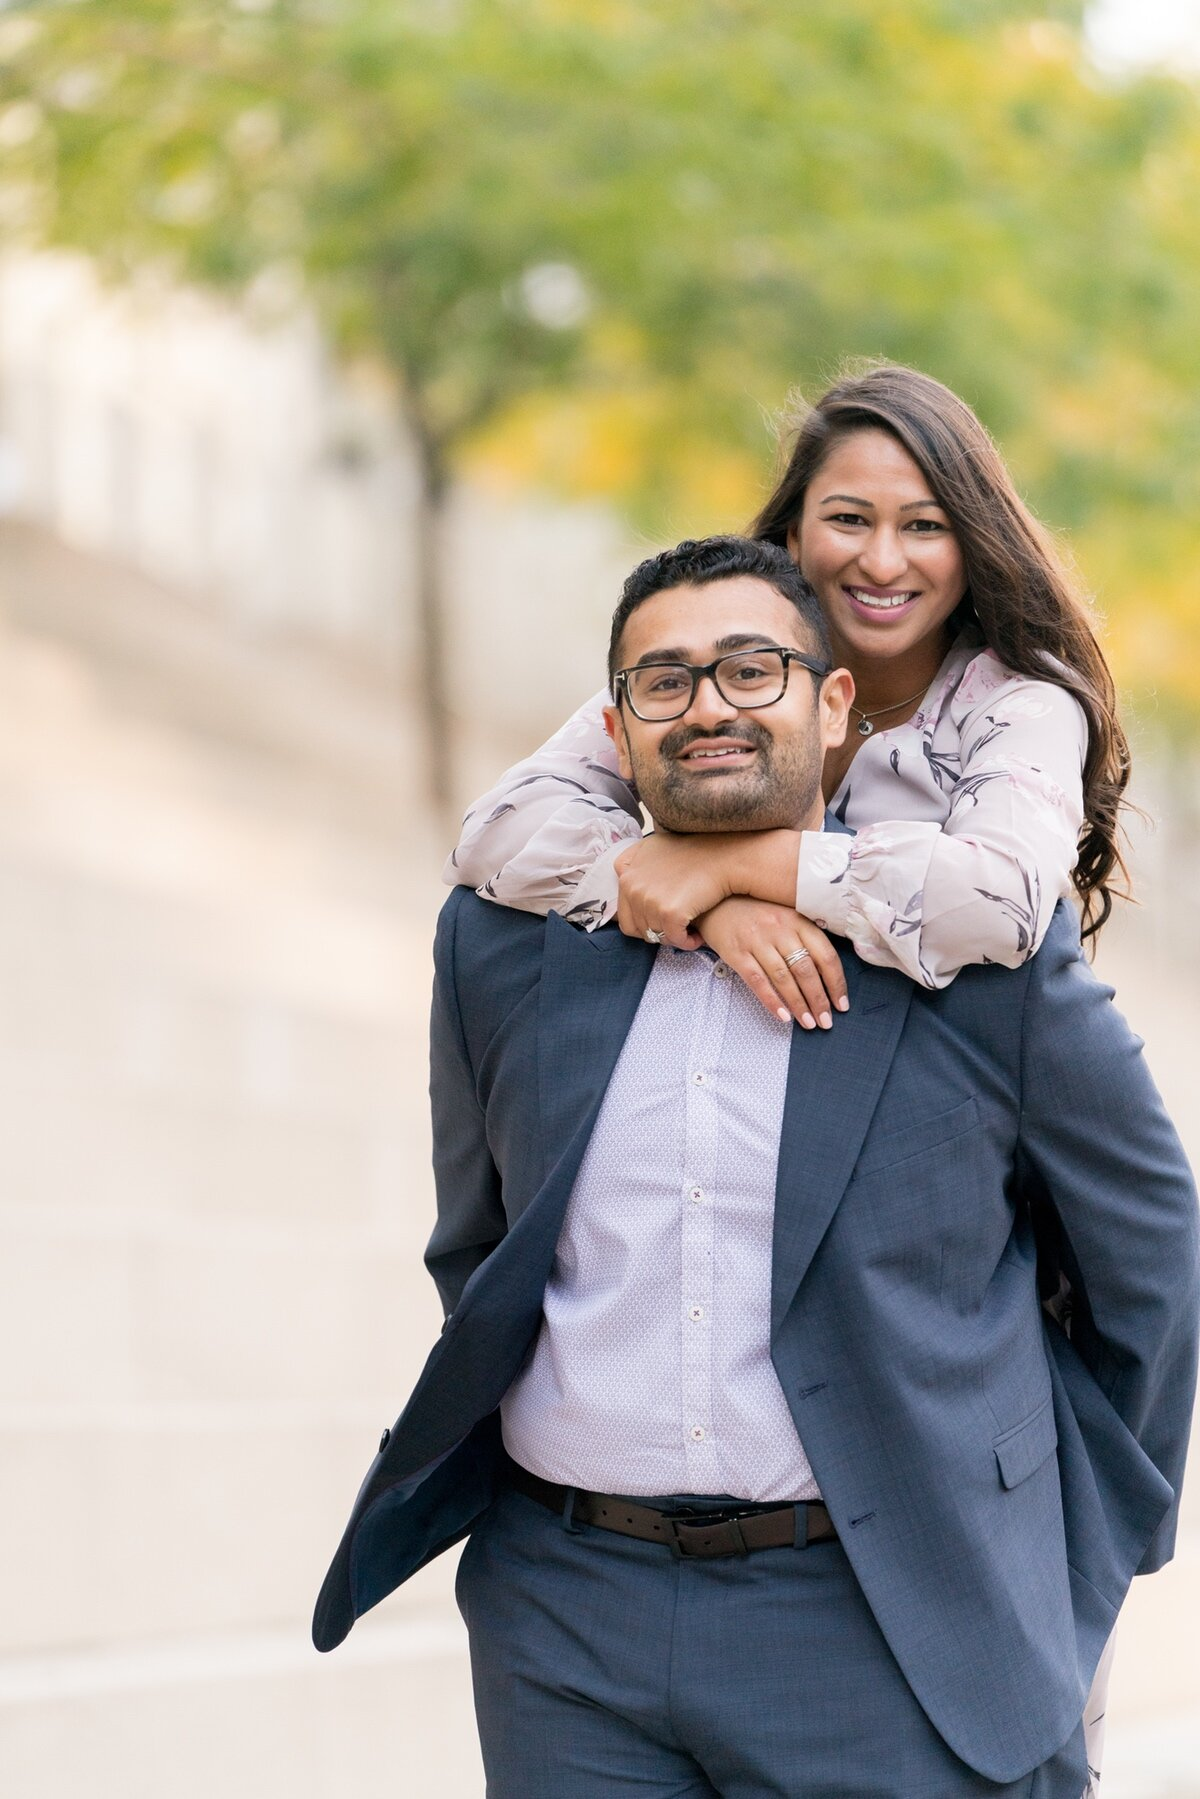 Le Cape Weddings - Chicago Engagement Session - Kinjal and Pratik -28.jpg